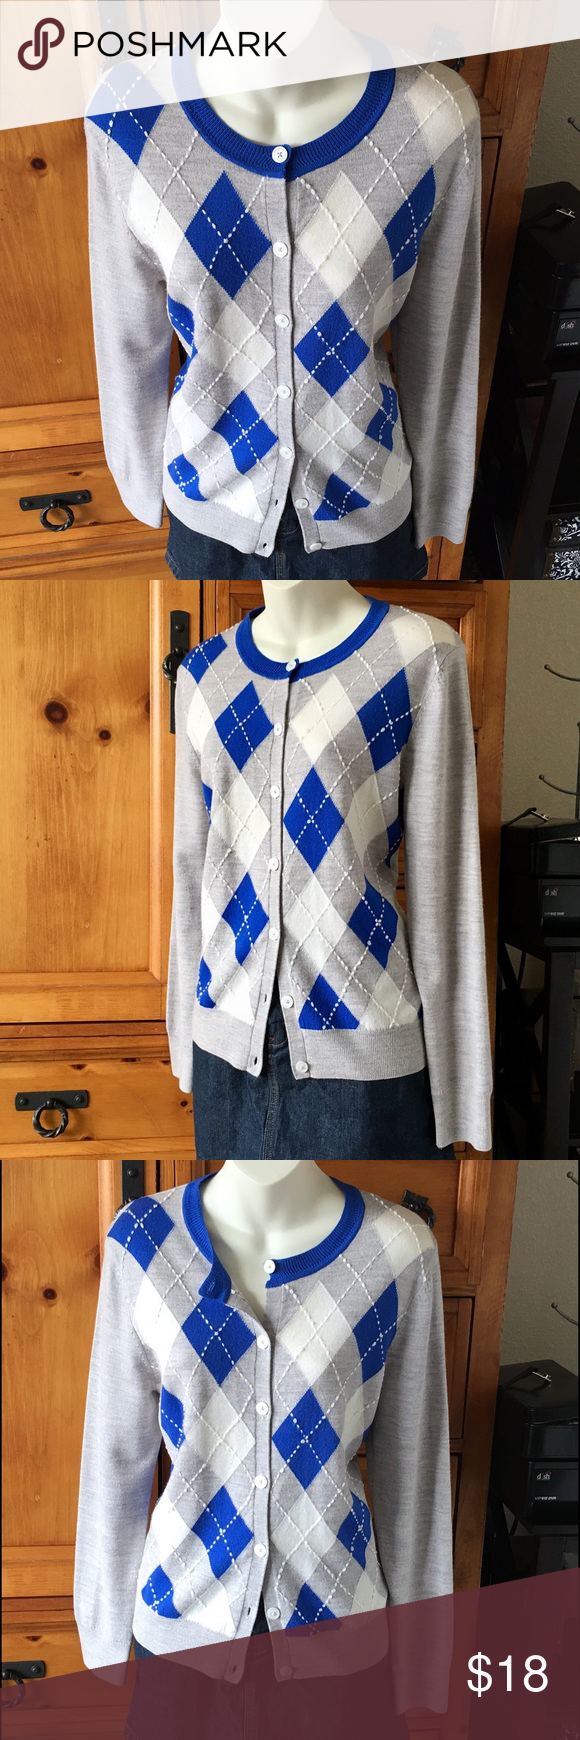 🔷BROOKS BROTHERS TEXTURED LIGHT WEIGHT CARDIGAN 🔷BROOKS BROTHERS TEXTURED LIGHT WEIGHT CARDIGAN WORN ONE TIME SOMEWHAT STRETCHY AND VERY SOFT Brooks Brothers Tops